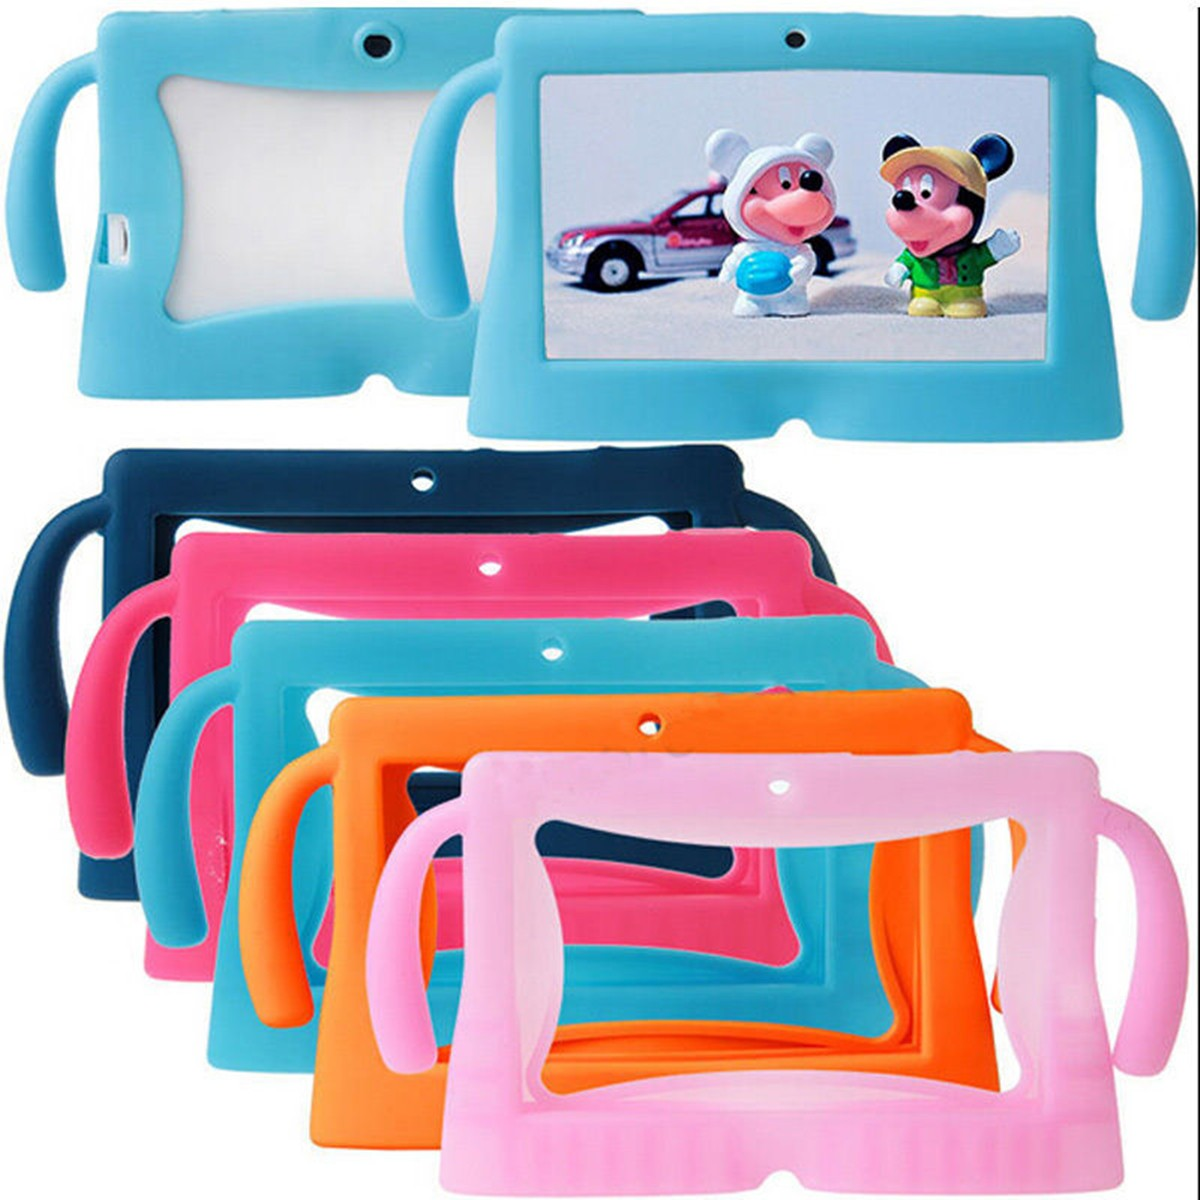 6 Colors Big Ears Series Safety Soft Silicone Gel Cover Case for Q88 universal for 7 Inch Kids Children e-Books Tablet PC